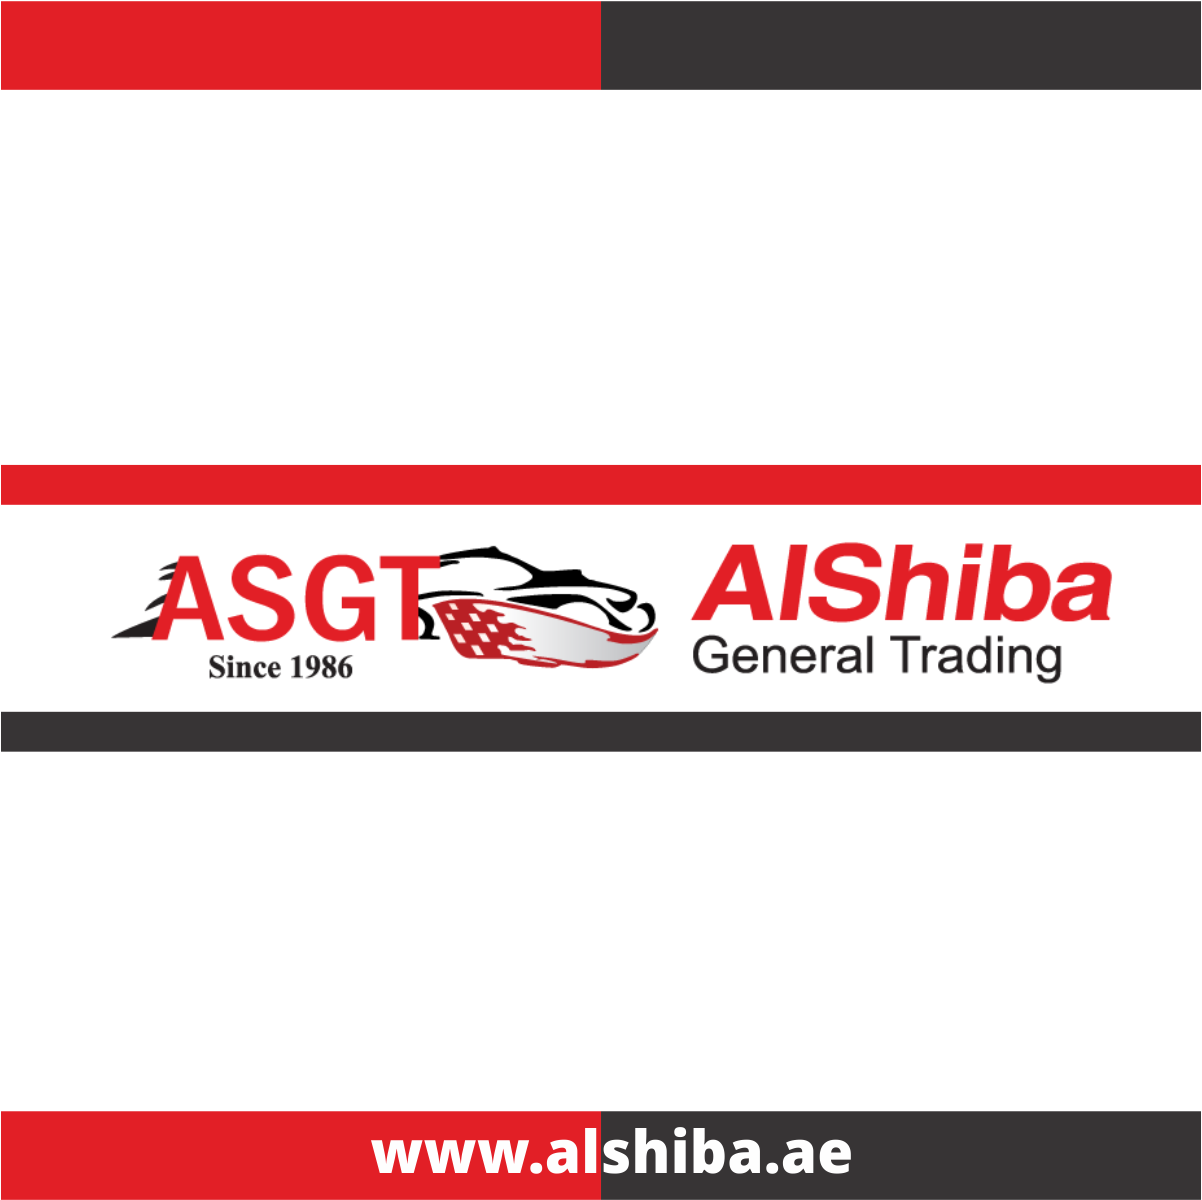 Alshiba General Trading UAE